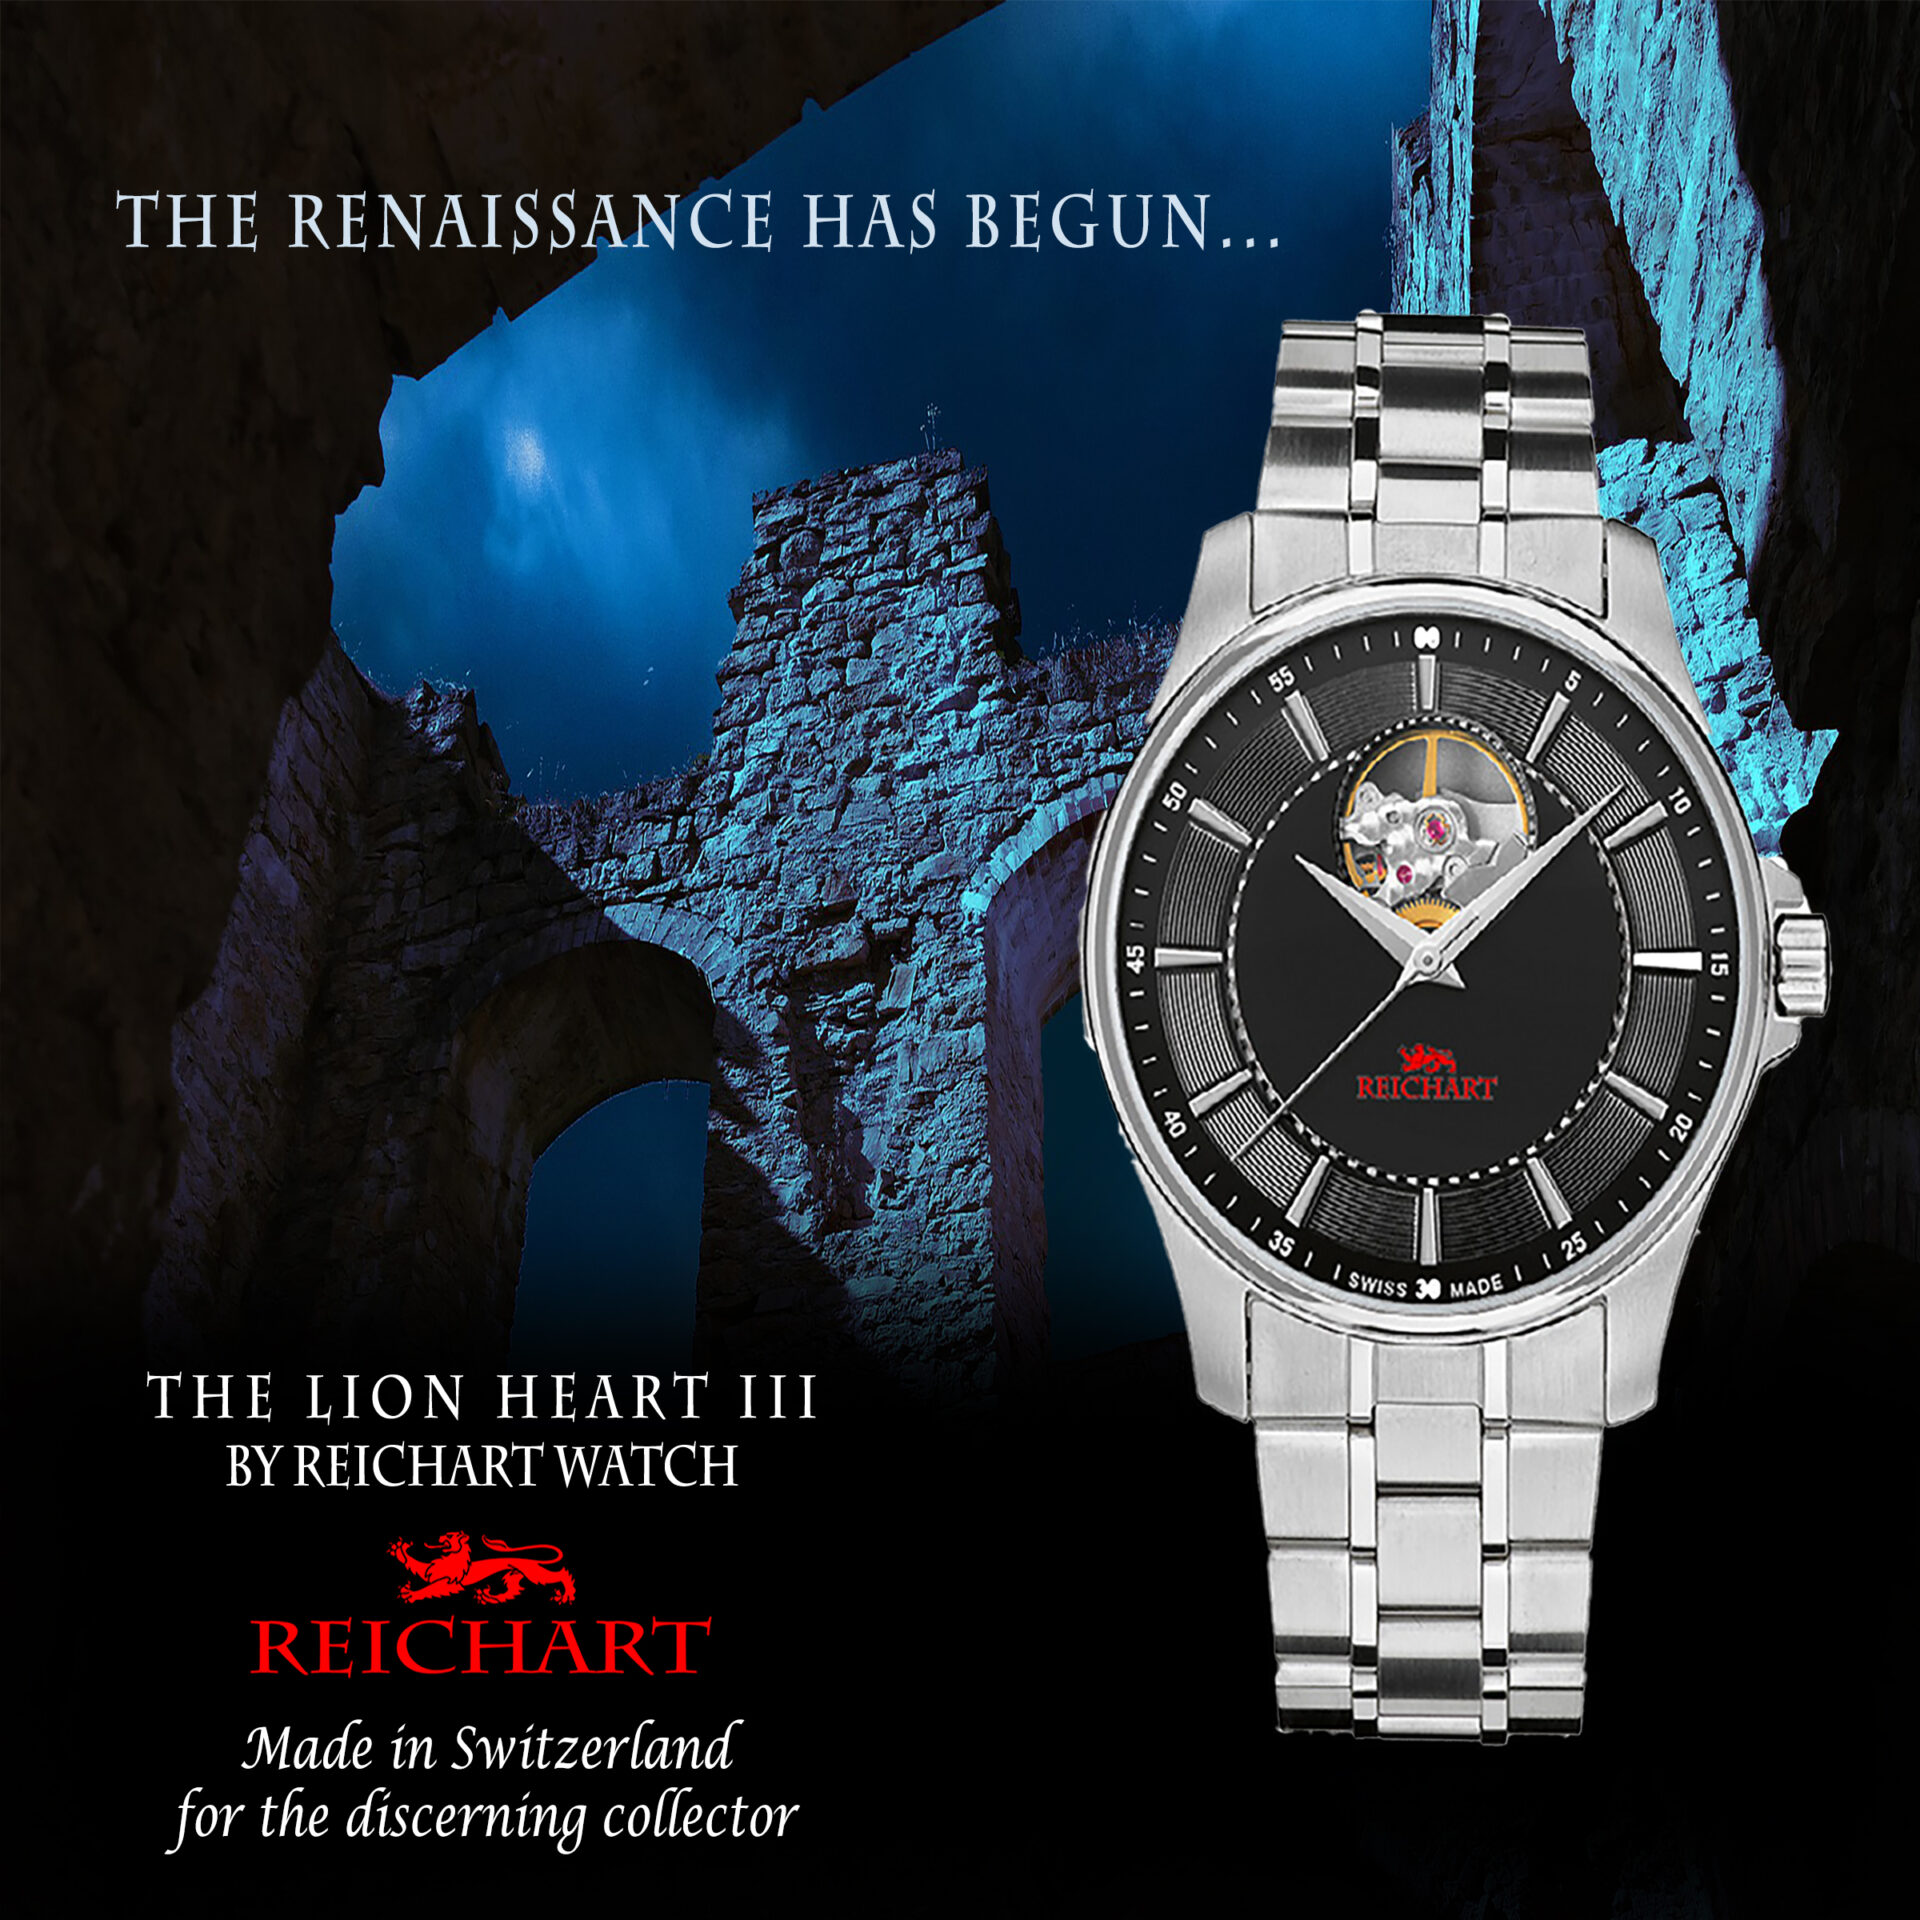 The Lion Heart III by Reichart Watch